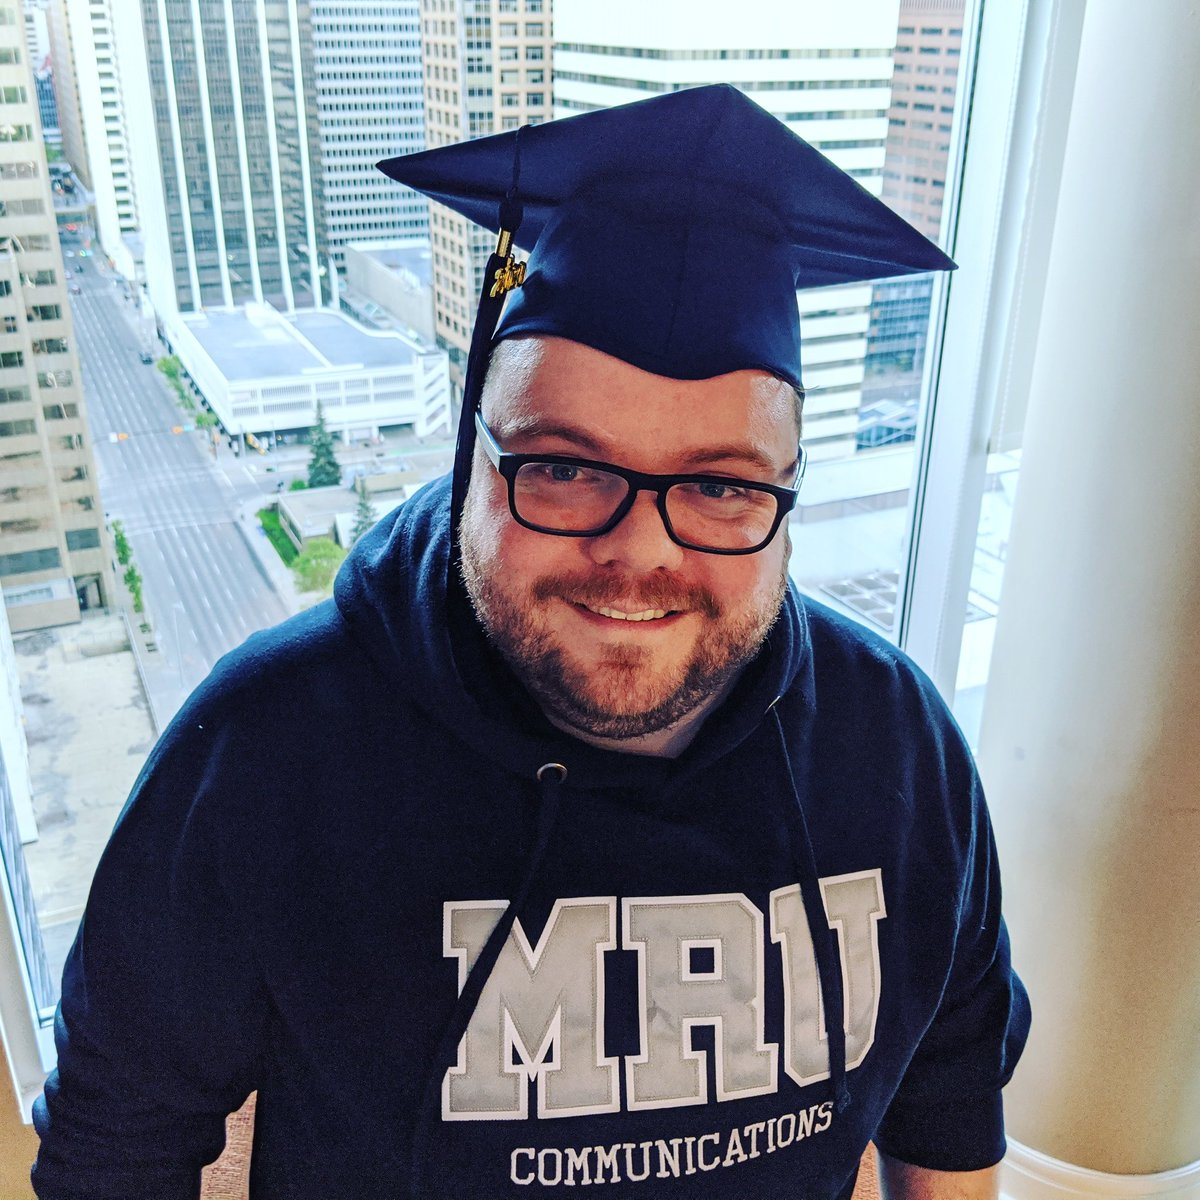 Today I was supposed to walk across the stage and grab that degree I've been working my ass off on these last four years. For obvious reasons, this could not be a reality this year.  WE DID IT, CLASS OF 2020!!  #mrugrad #communications #broadcastmedia #grad2020 @mountroyal4u https://t.co/t76aLIjgh5